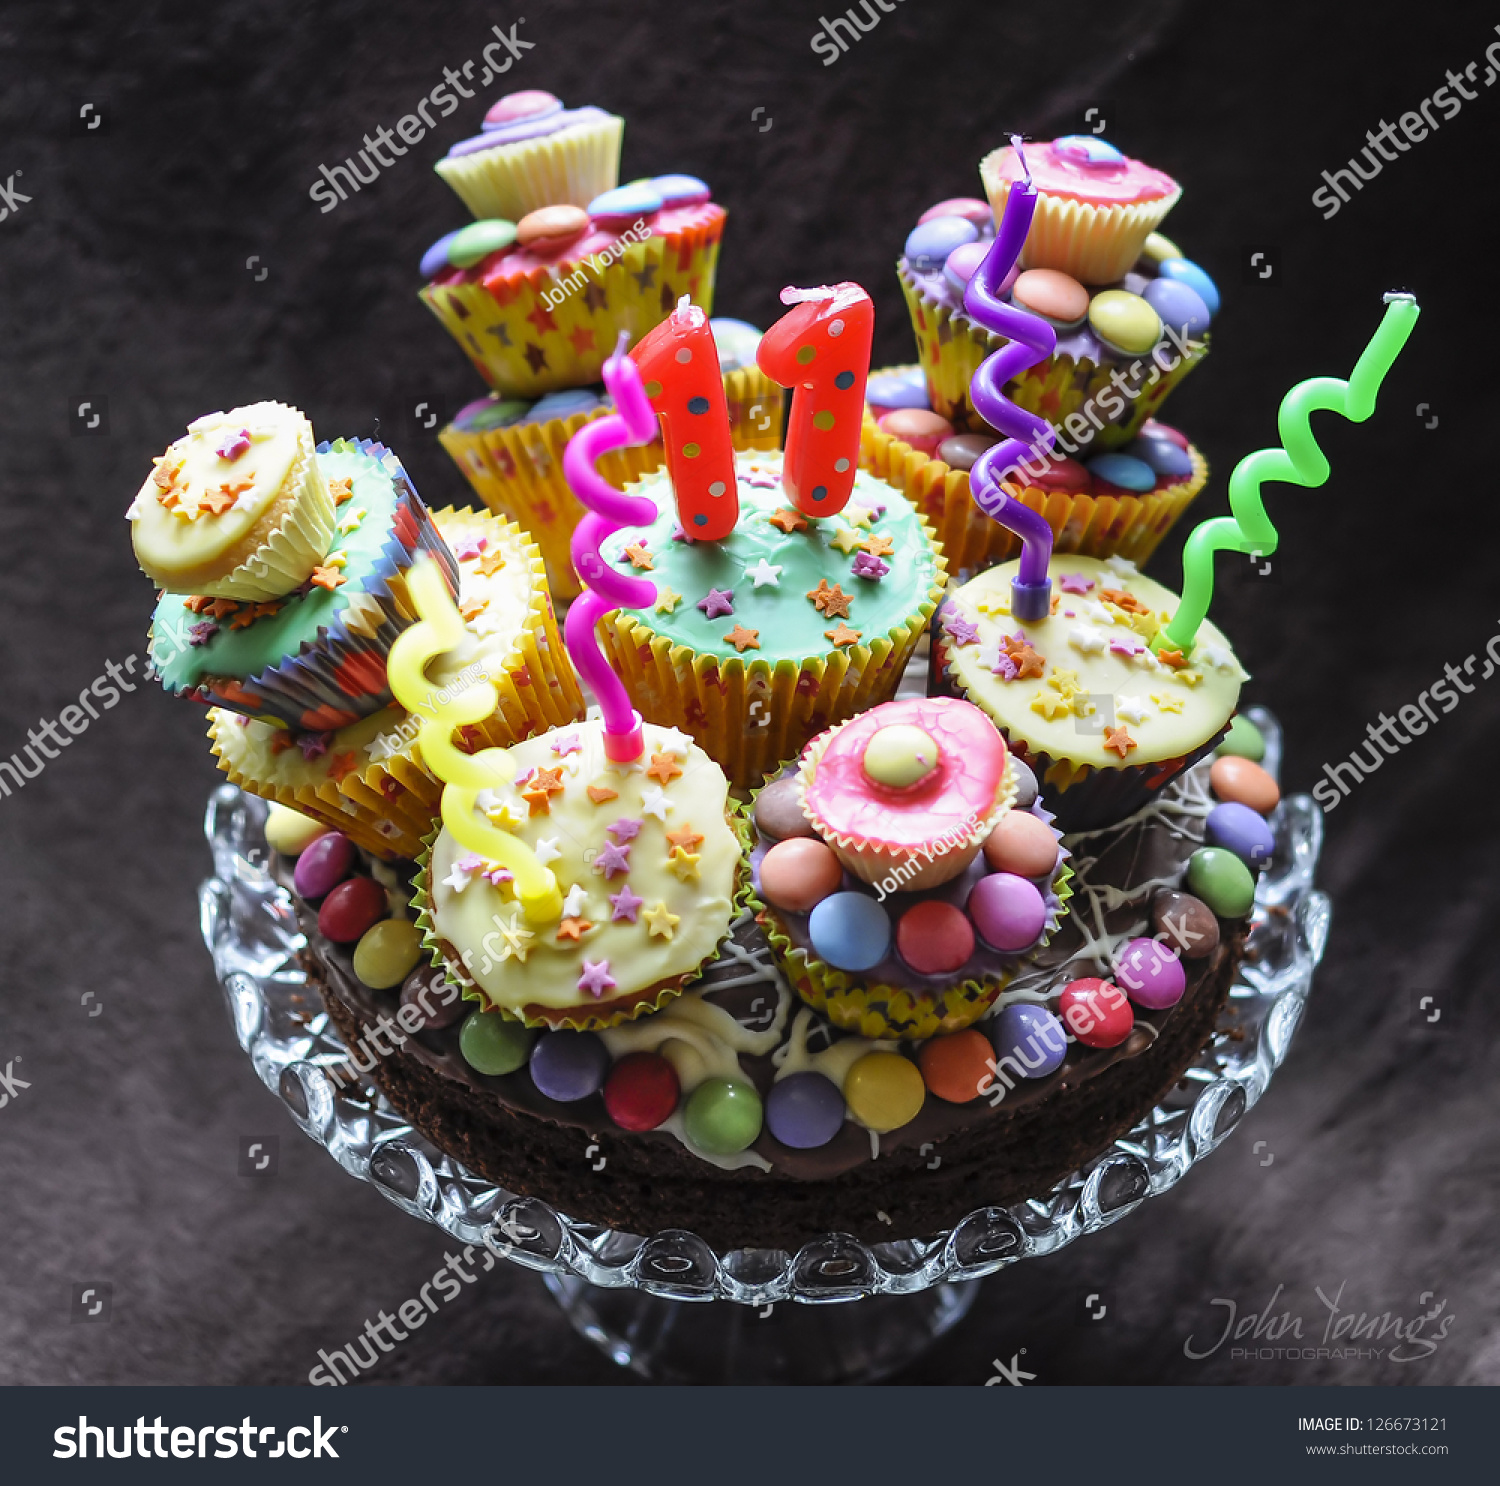 Chocolate Birthday Cake With Sweets And Candles